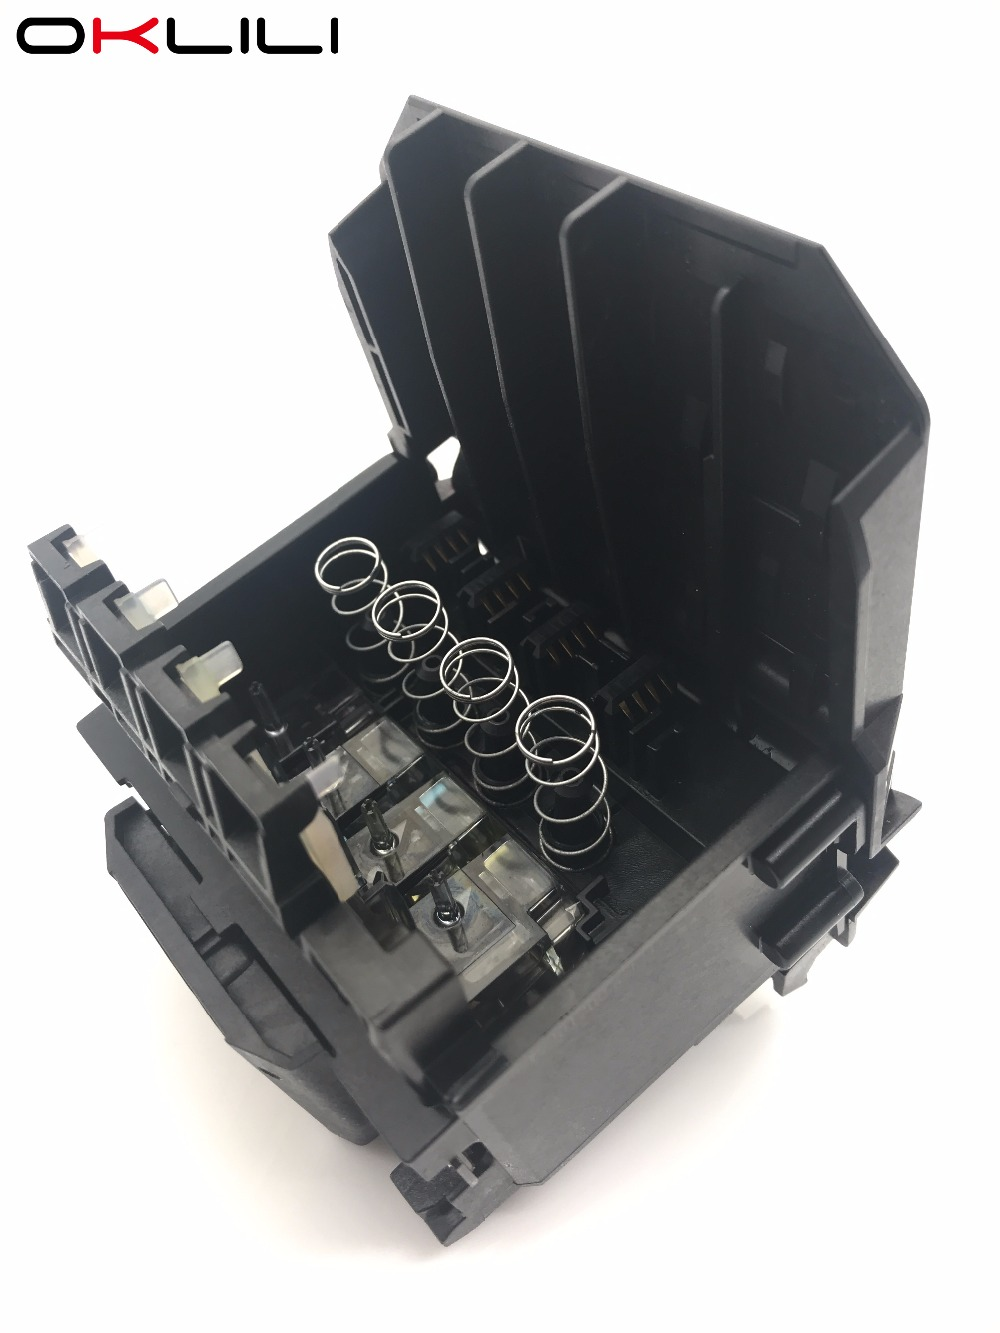 1X CB863-80002A 932 933 932XL 933XL Printhead Printer Print head untuk HP Officejet 6060 6060e 6100 6100e 6600 6700 7110 7600 7610 7610